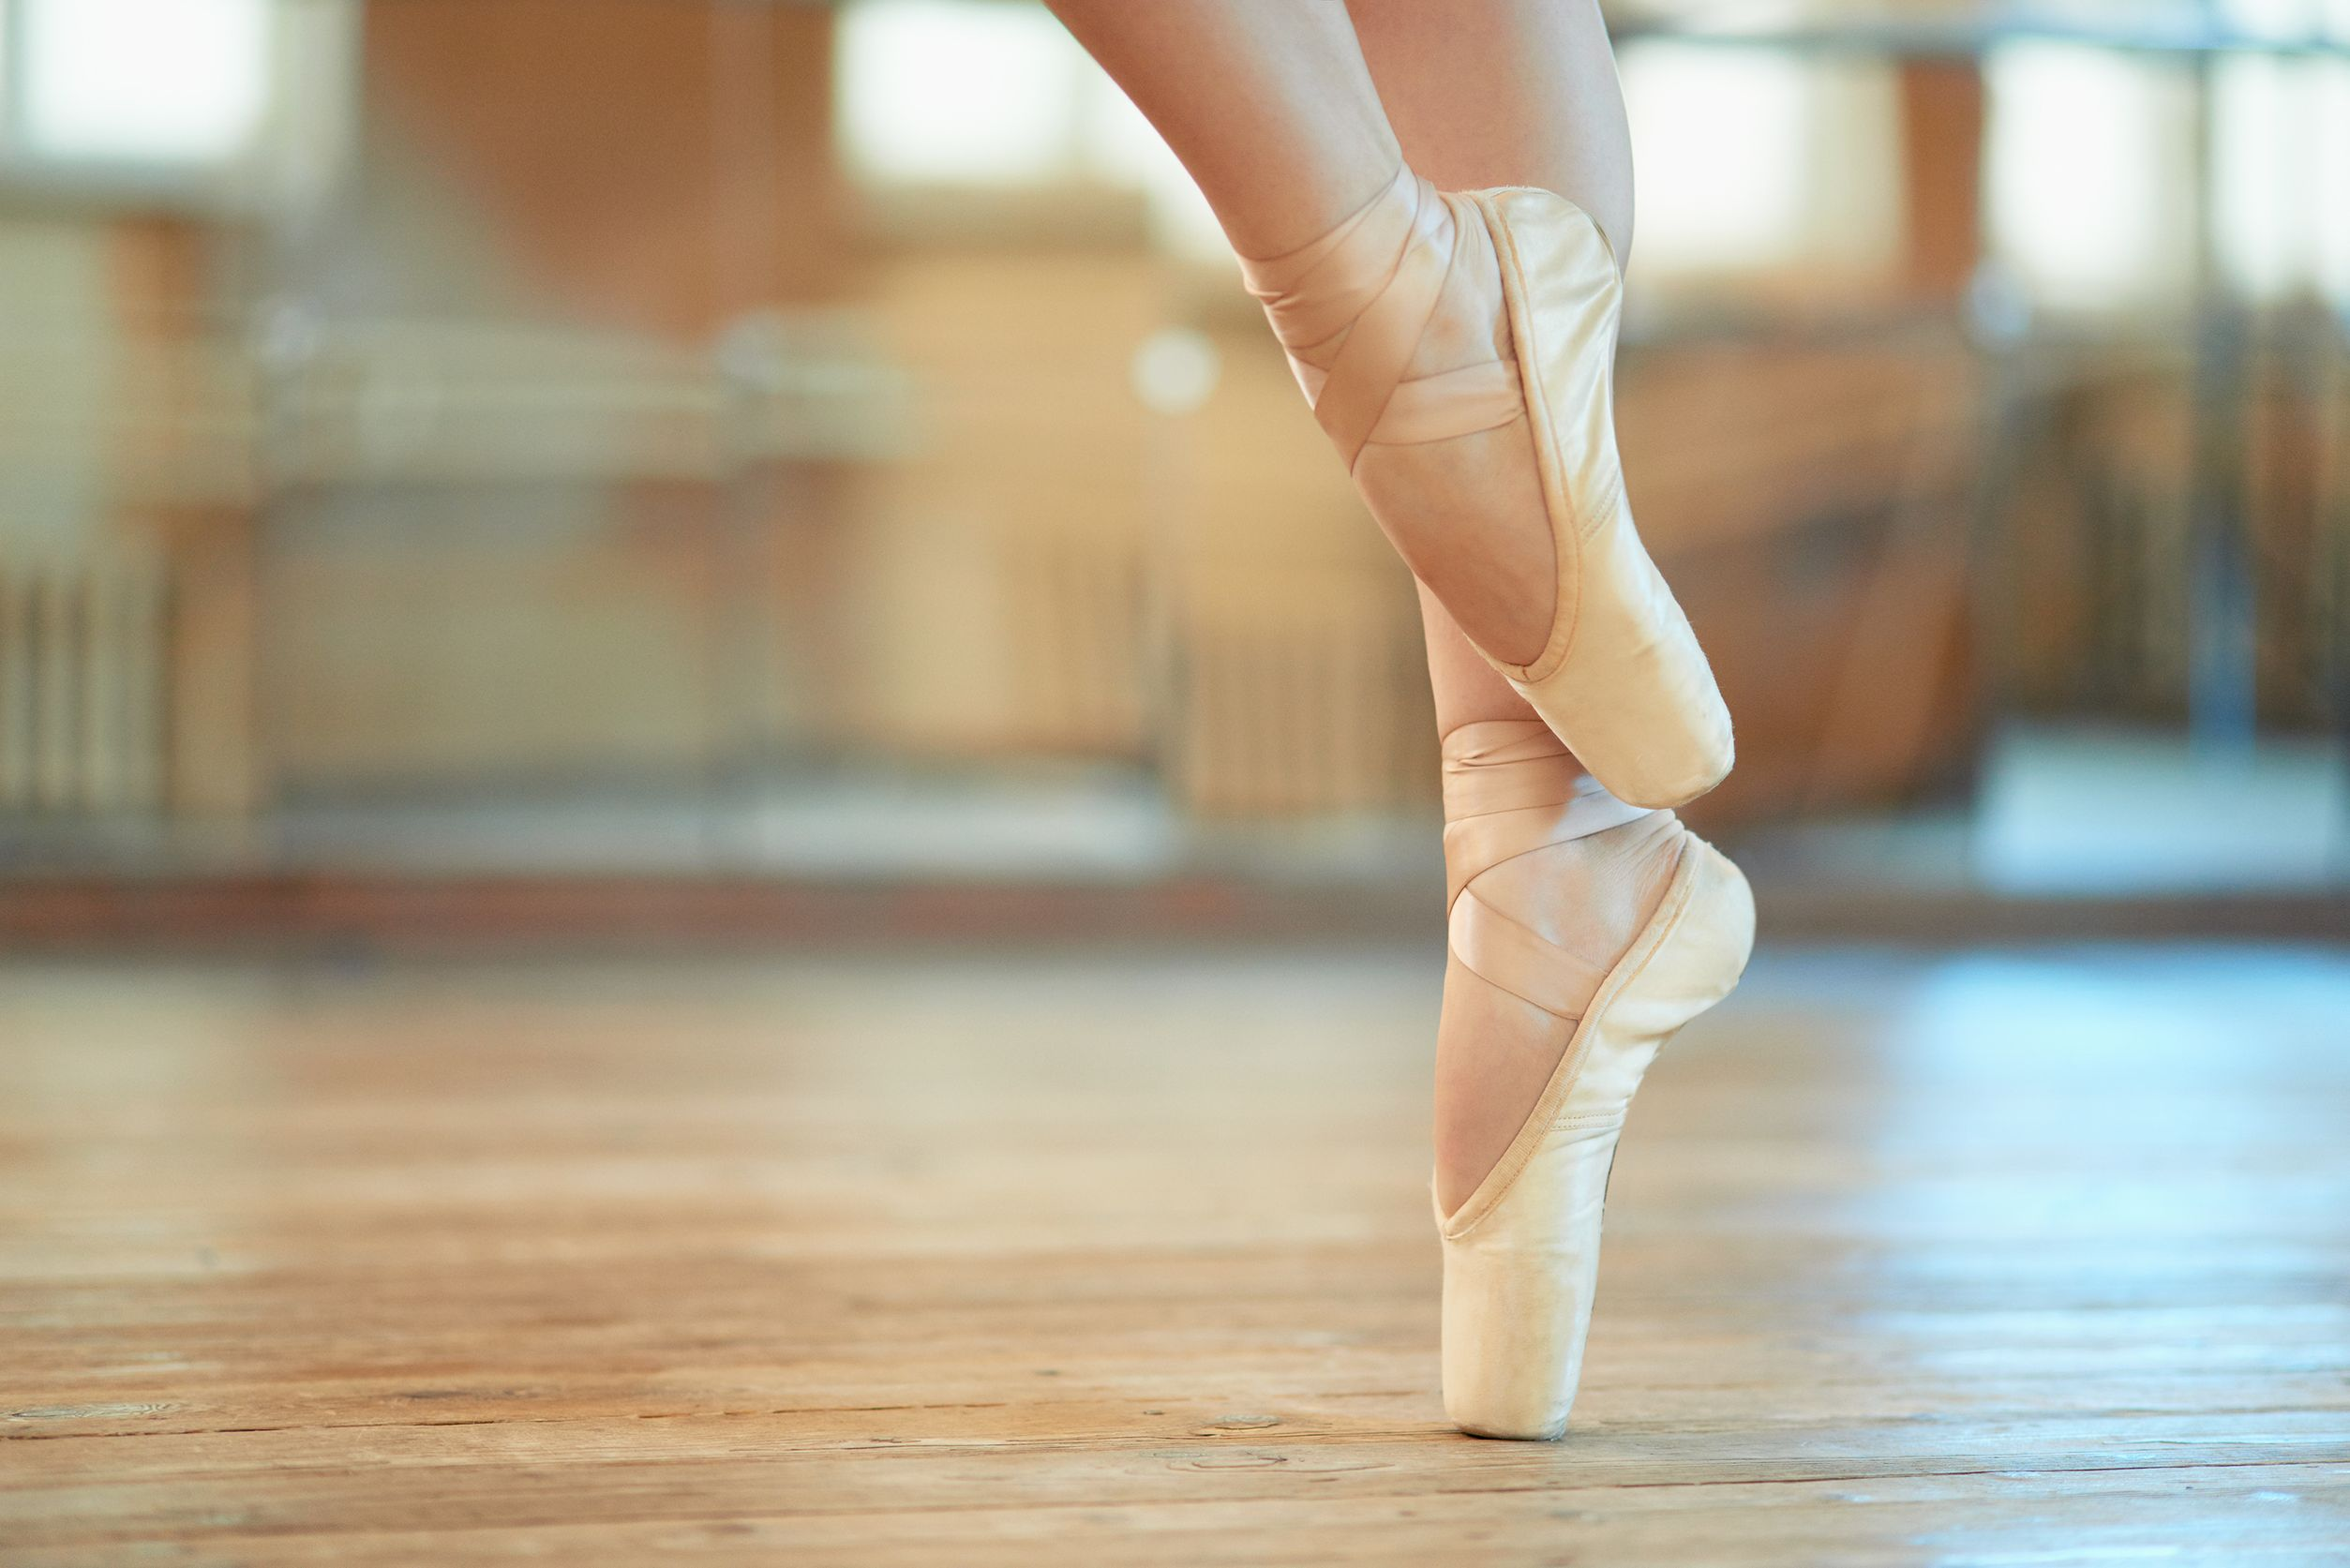 37036734 – beautiful legs of a dancer in pointe